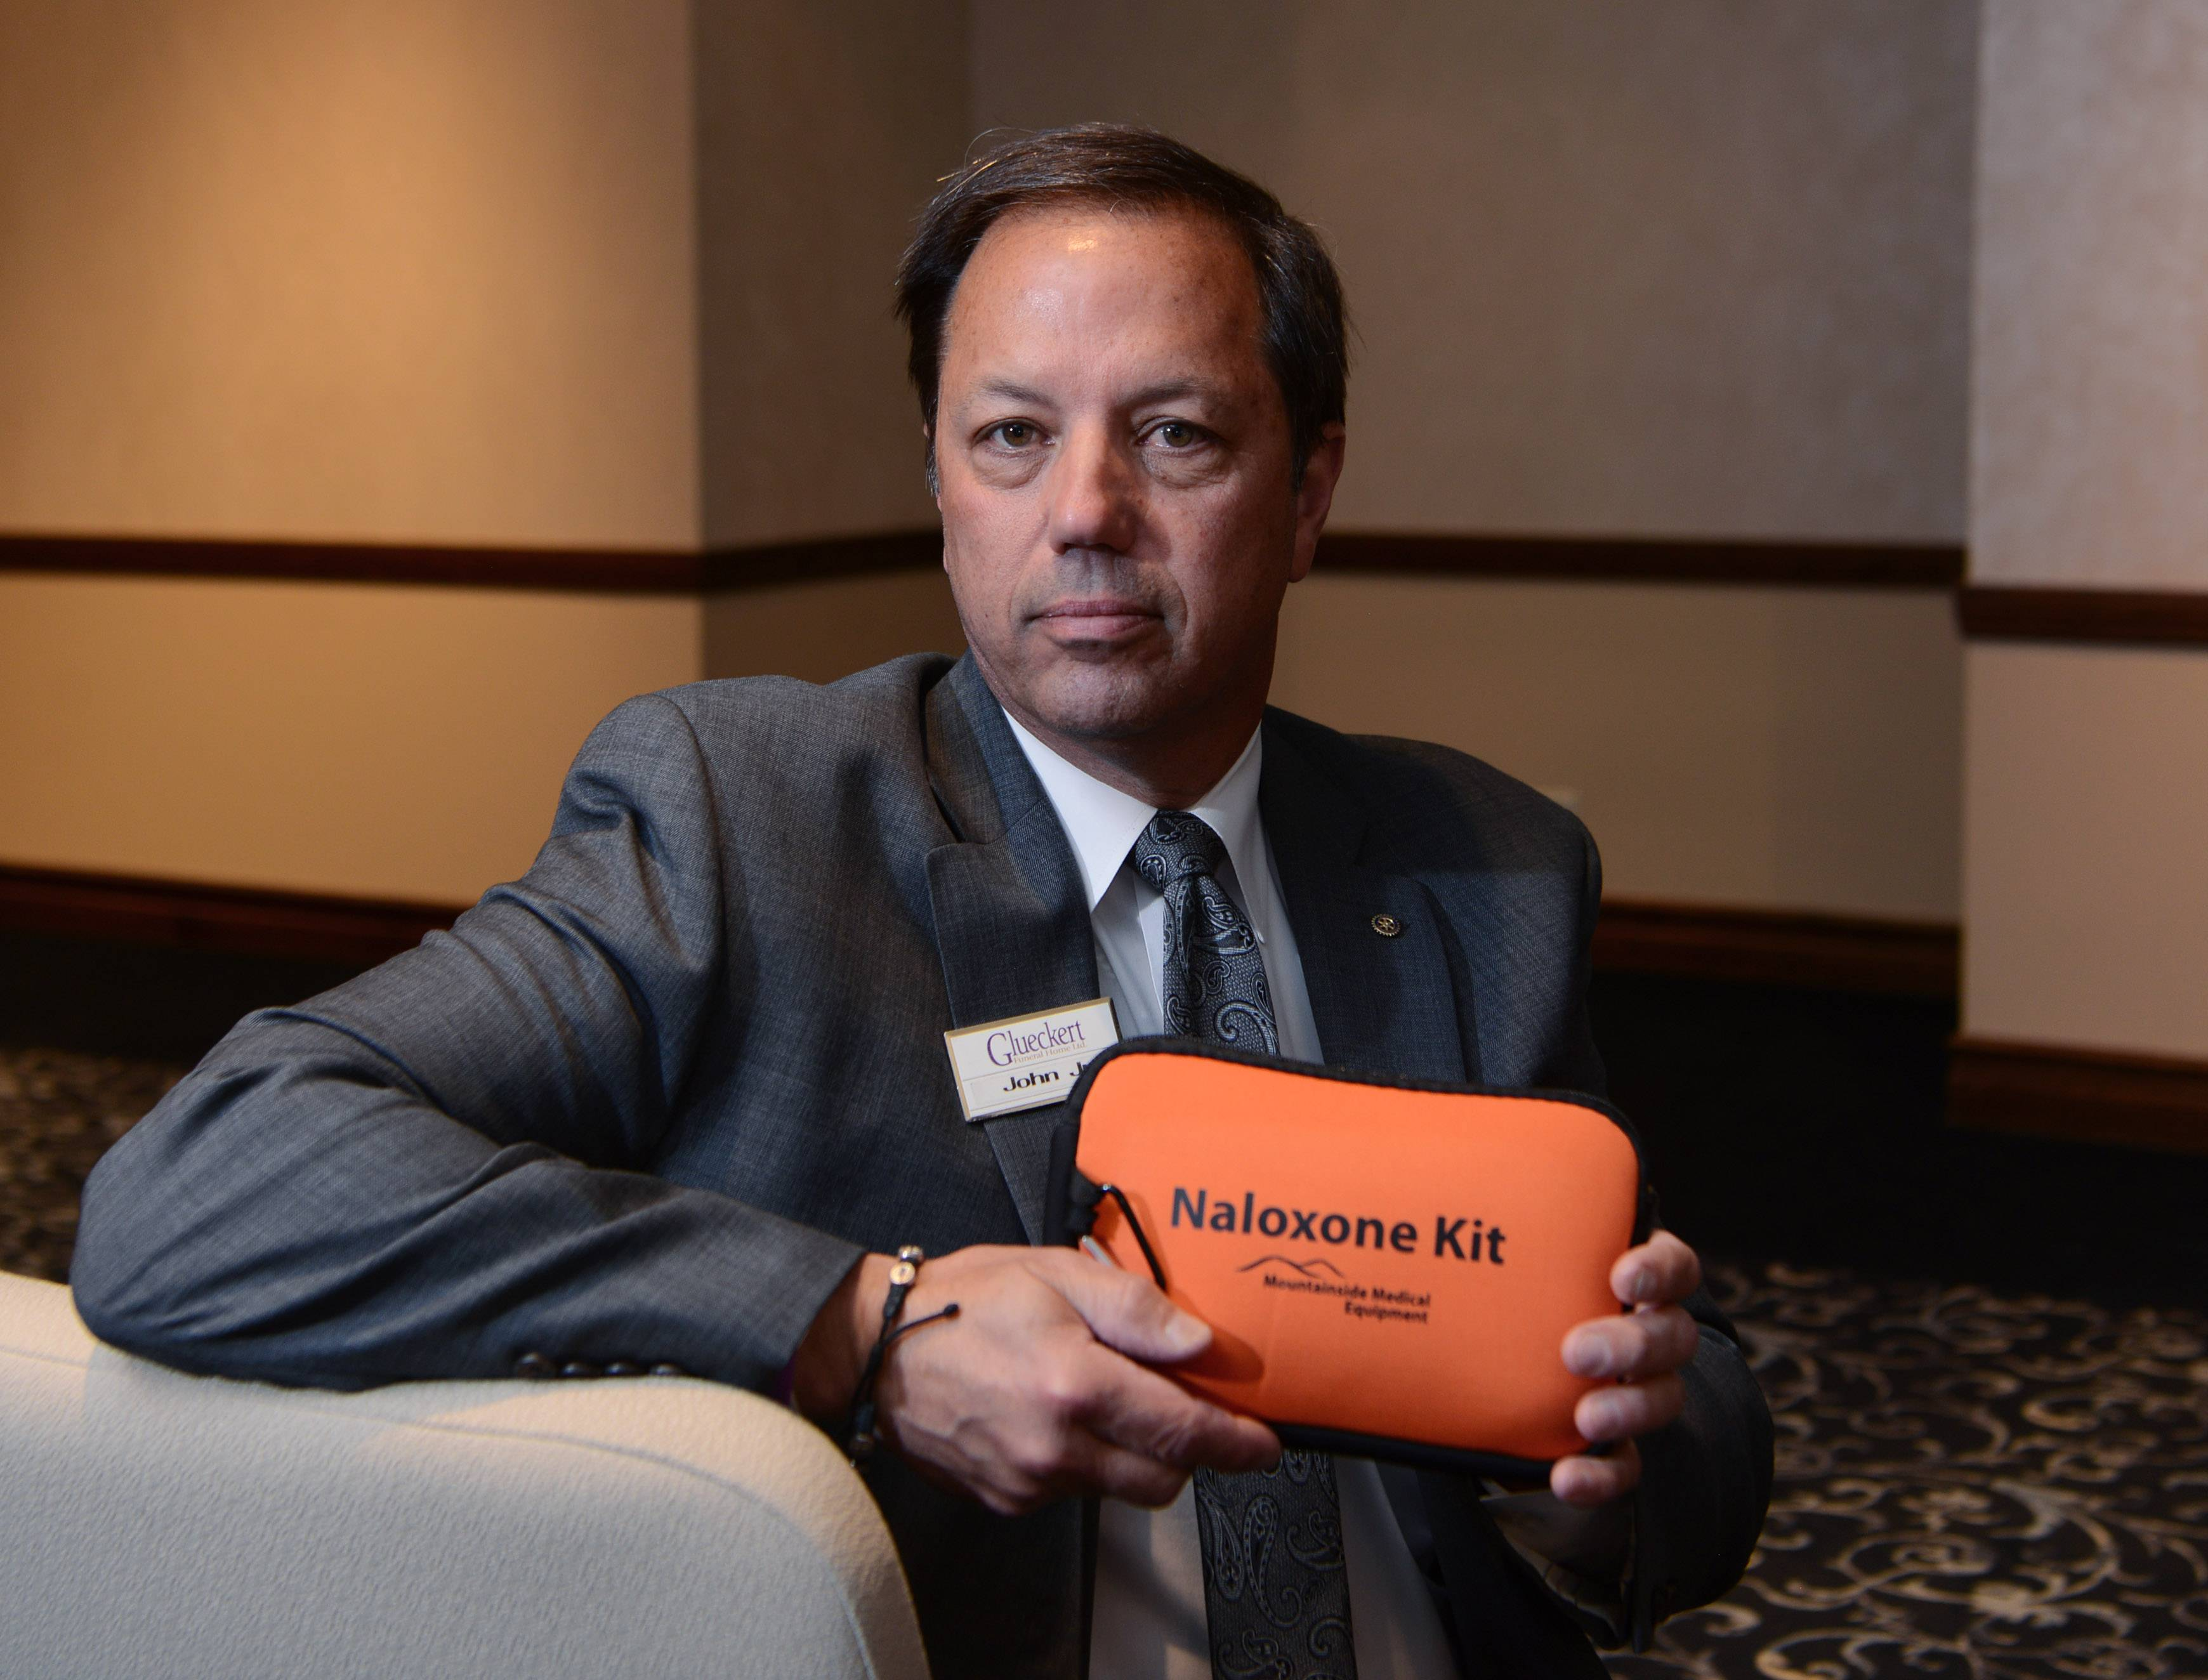 Funeral director and owner John Glueckert Jr. of Glueckert Funeral Home in Arlington Heights keeps naloxone with other first aid supplies inside his business in case an opioid overdose occurs during a funeral or wake.